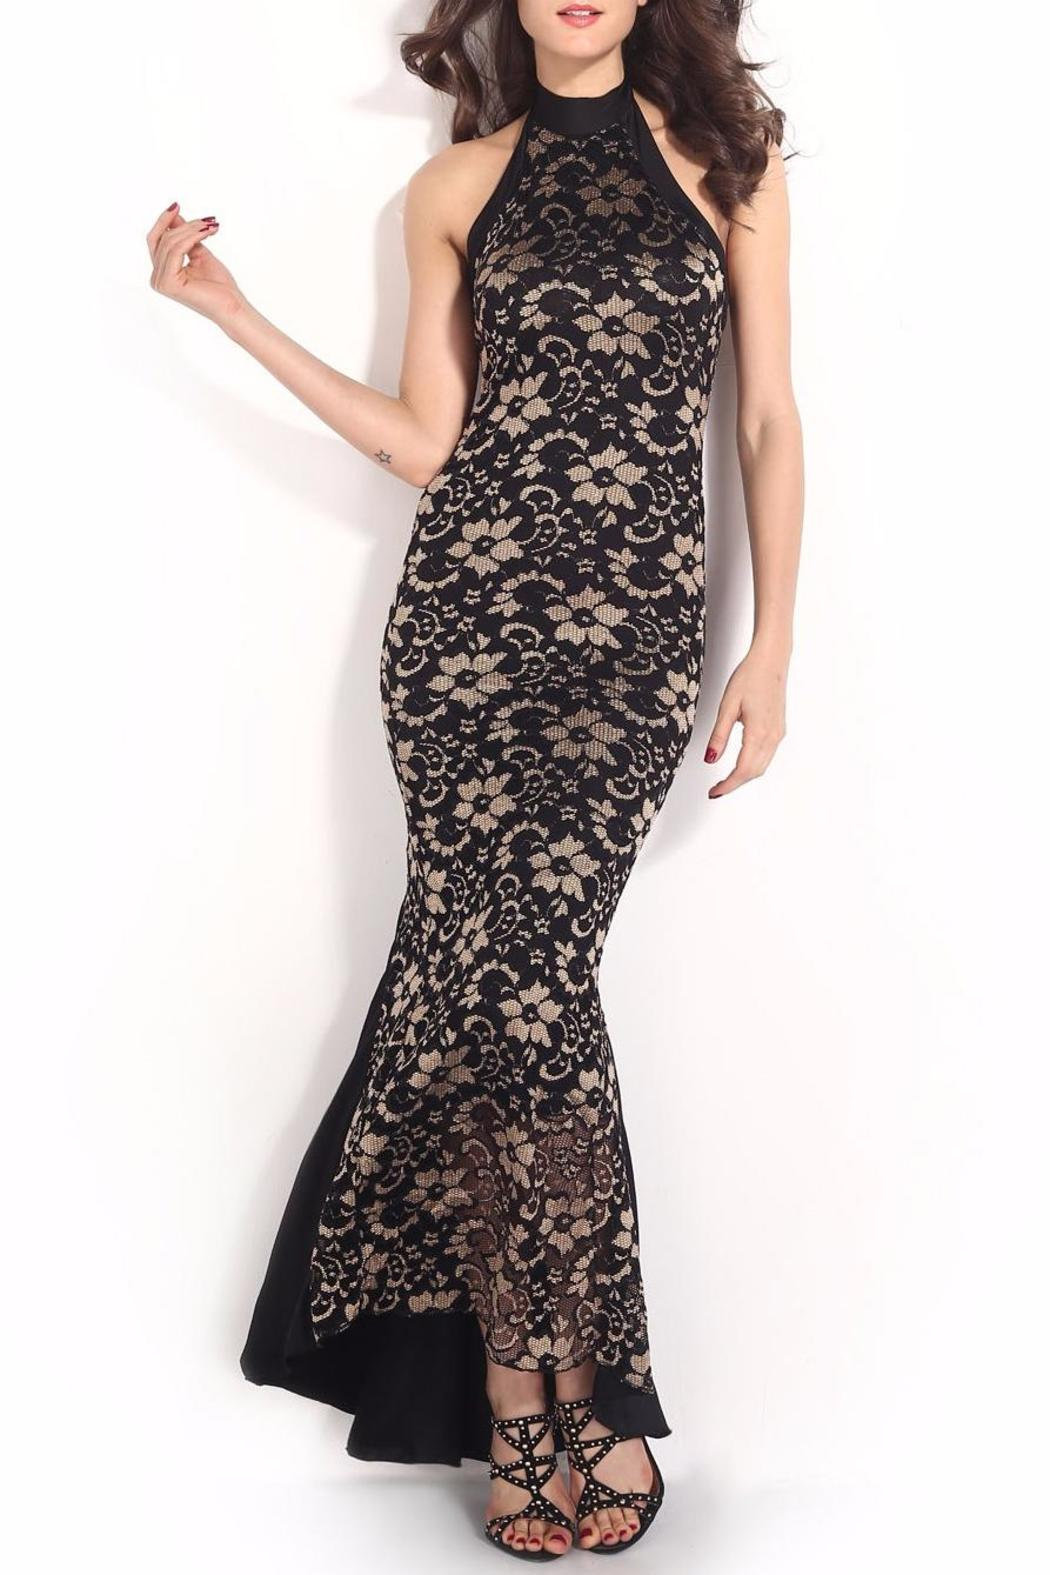 Adore Clothes & More Lace Long Dress - Main Image